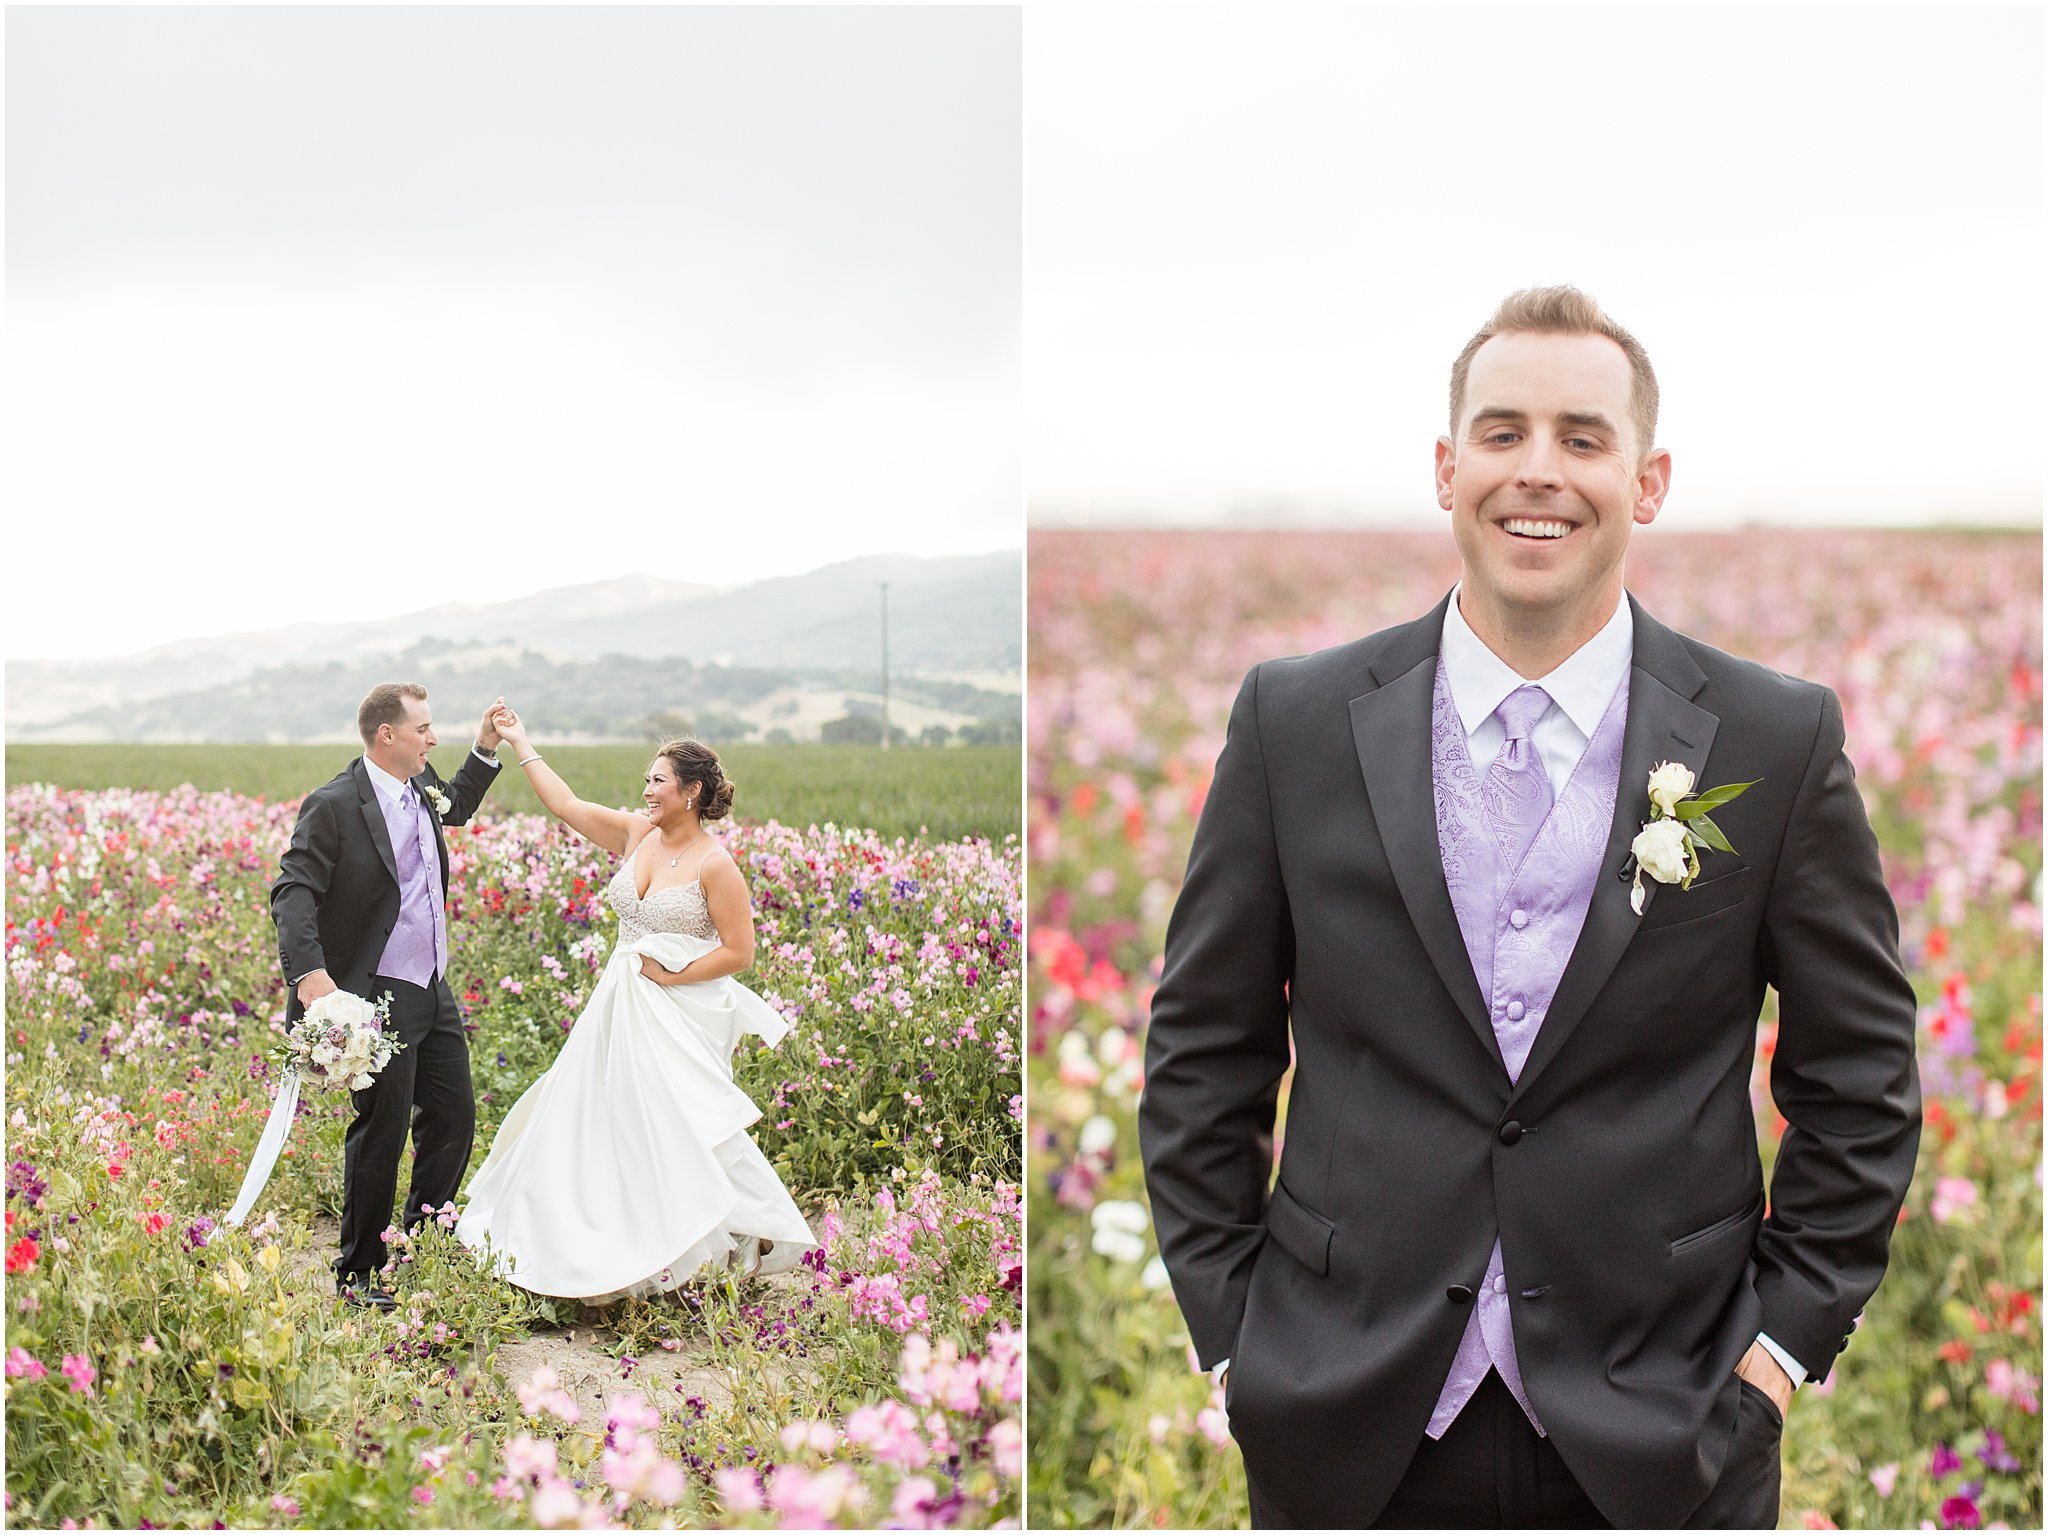 2019 wedding san juan bautista hacienda de leal vineyards bay area wedding photographer_0089.jpg